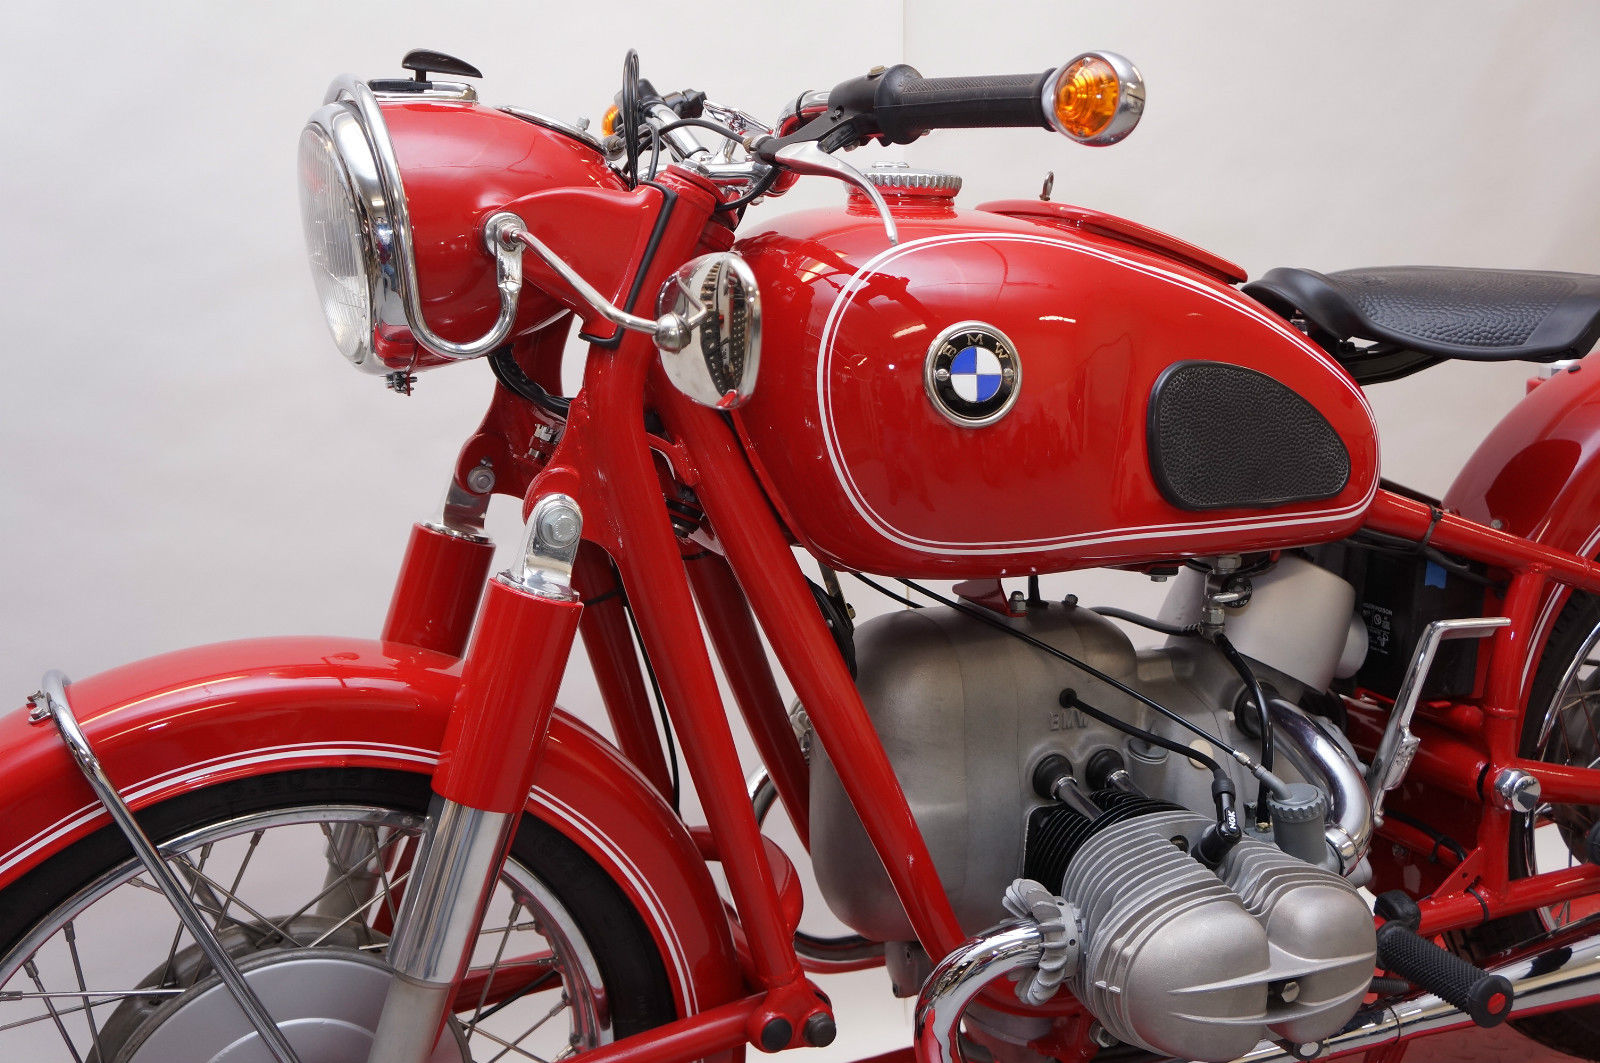 Restored Bmw R69s 1966 Photographs At Classic Bikes